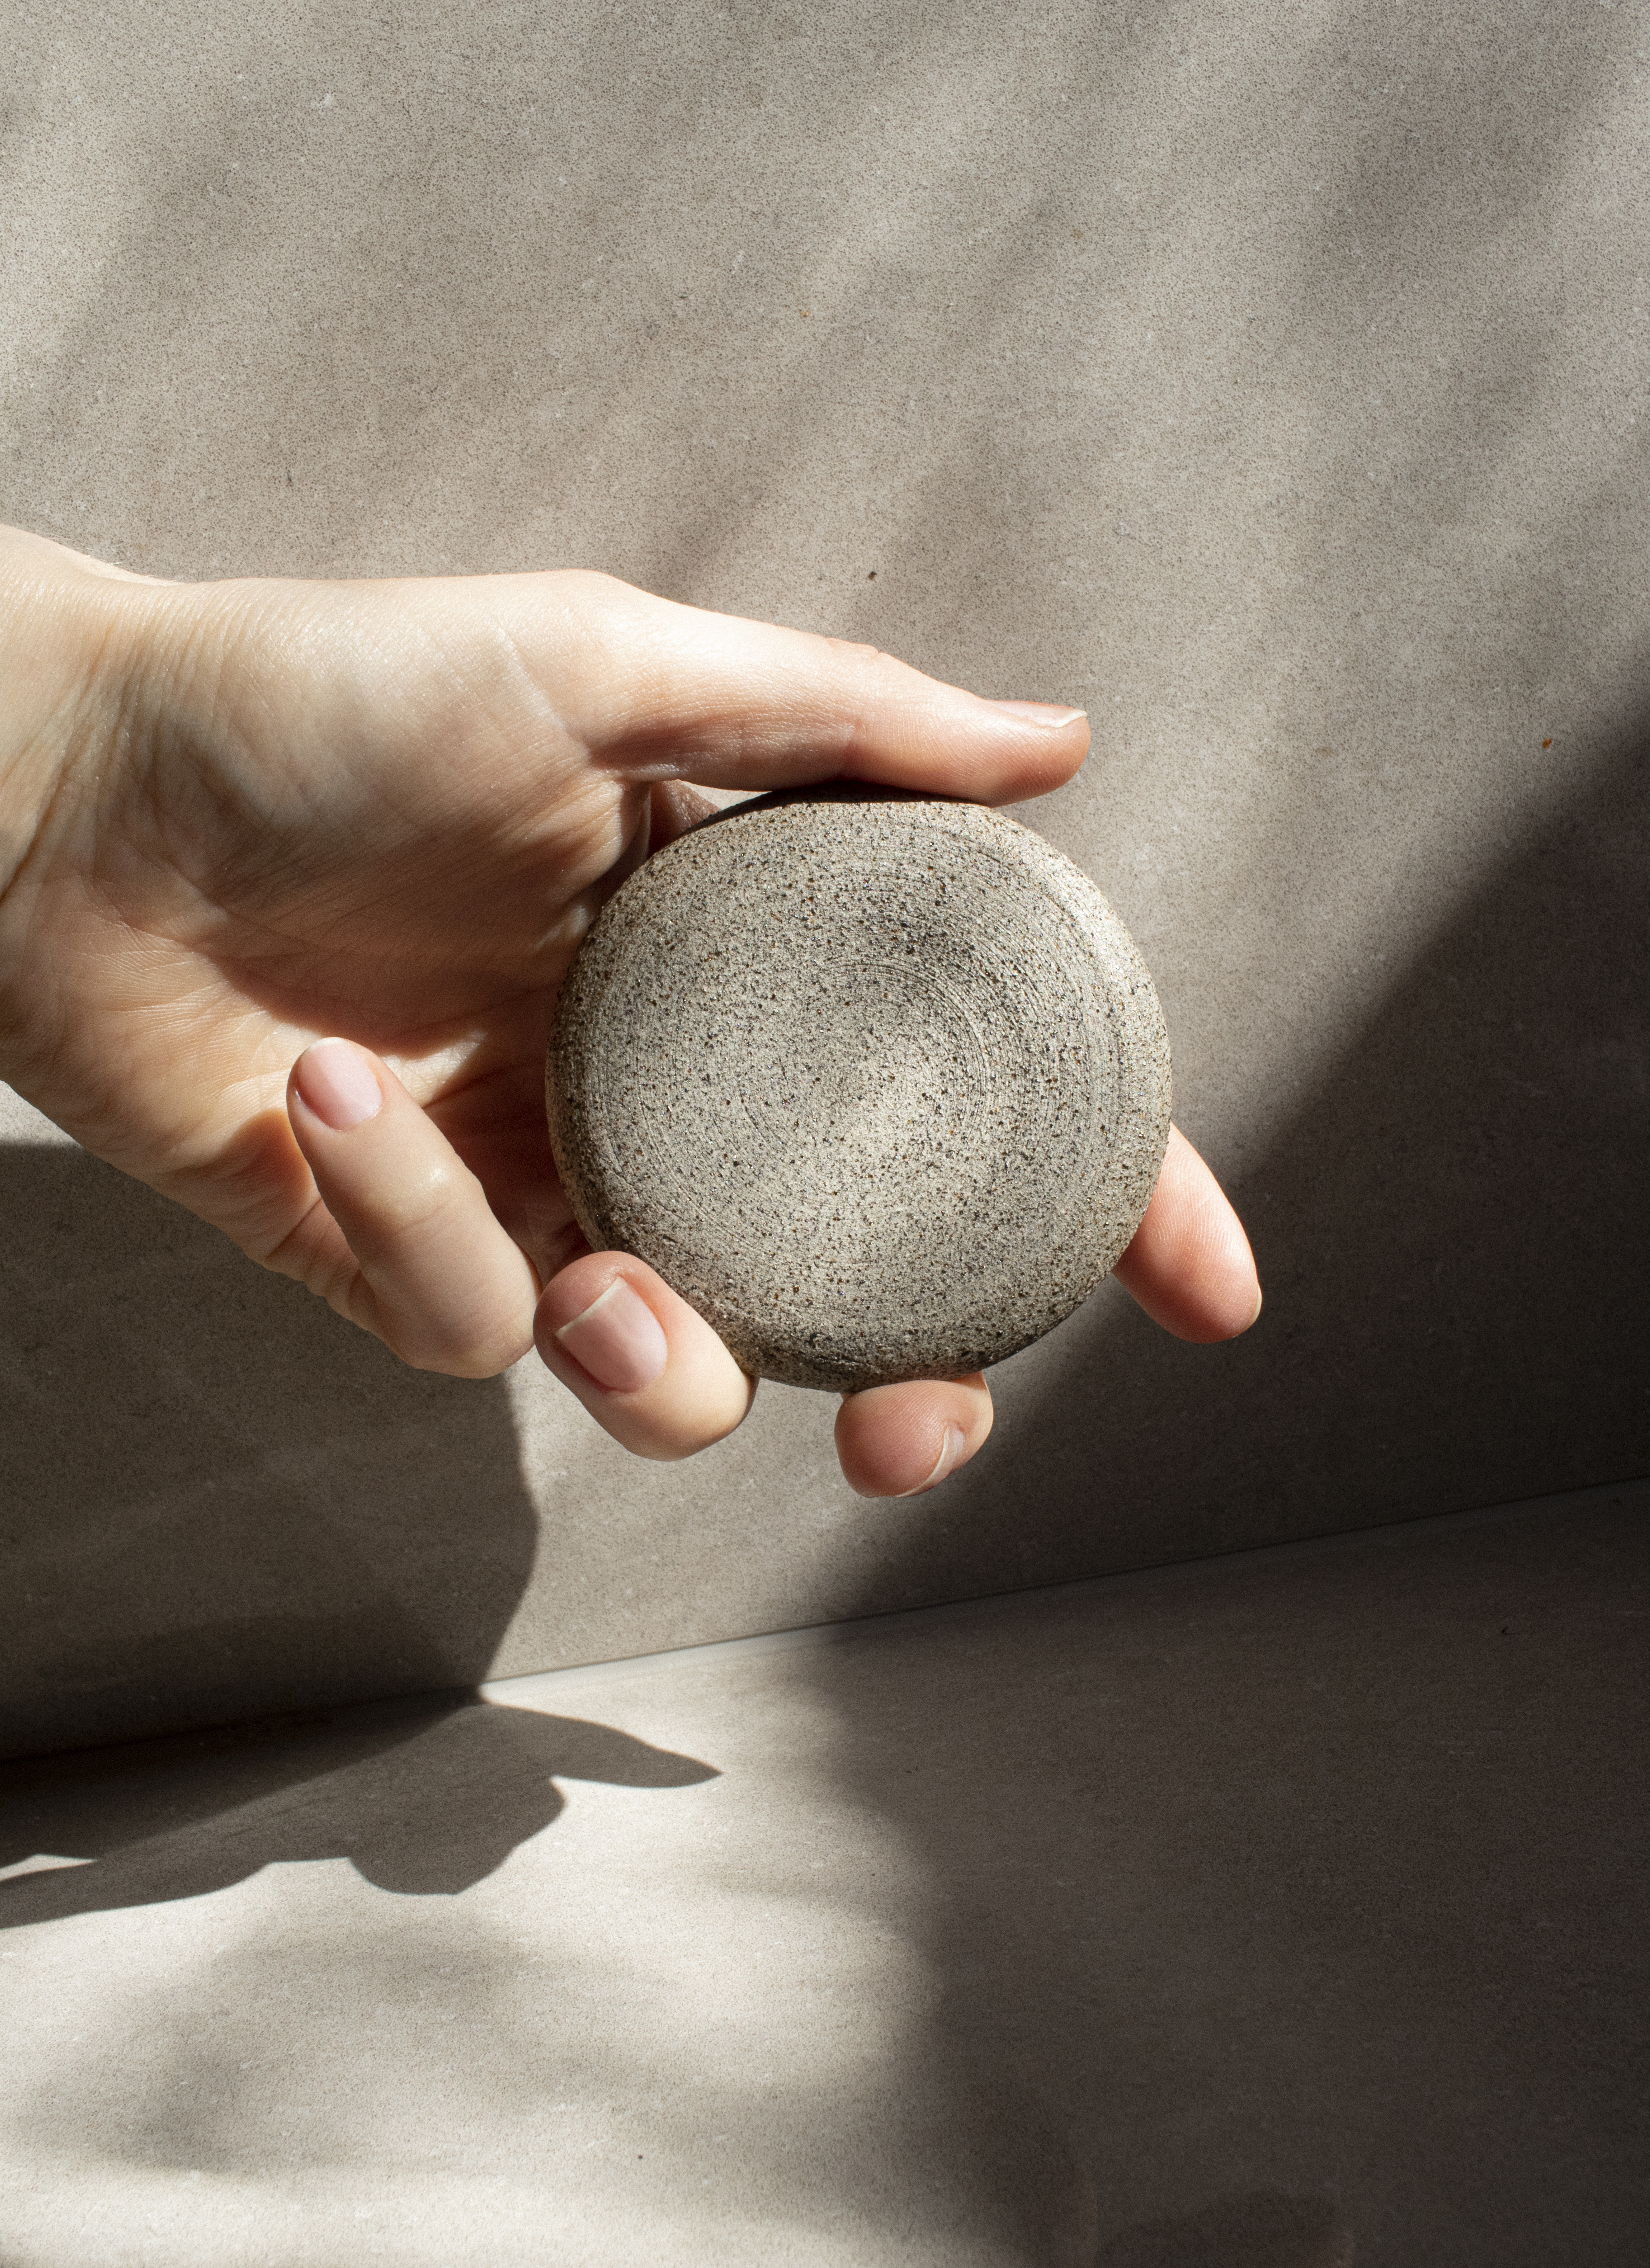 A handmade diffuser stone that spreads the scent of essential oils, made in off-white clay. Each stone is unique, with a fine texture that hints about the craftsmanship behind it and adds a calm feeling to every room. A sense of space to be.